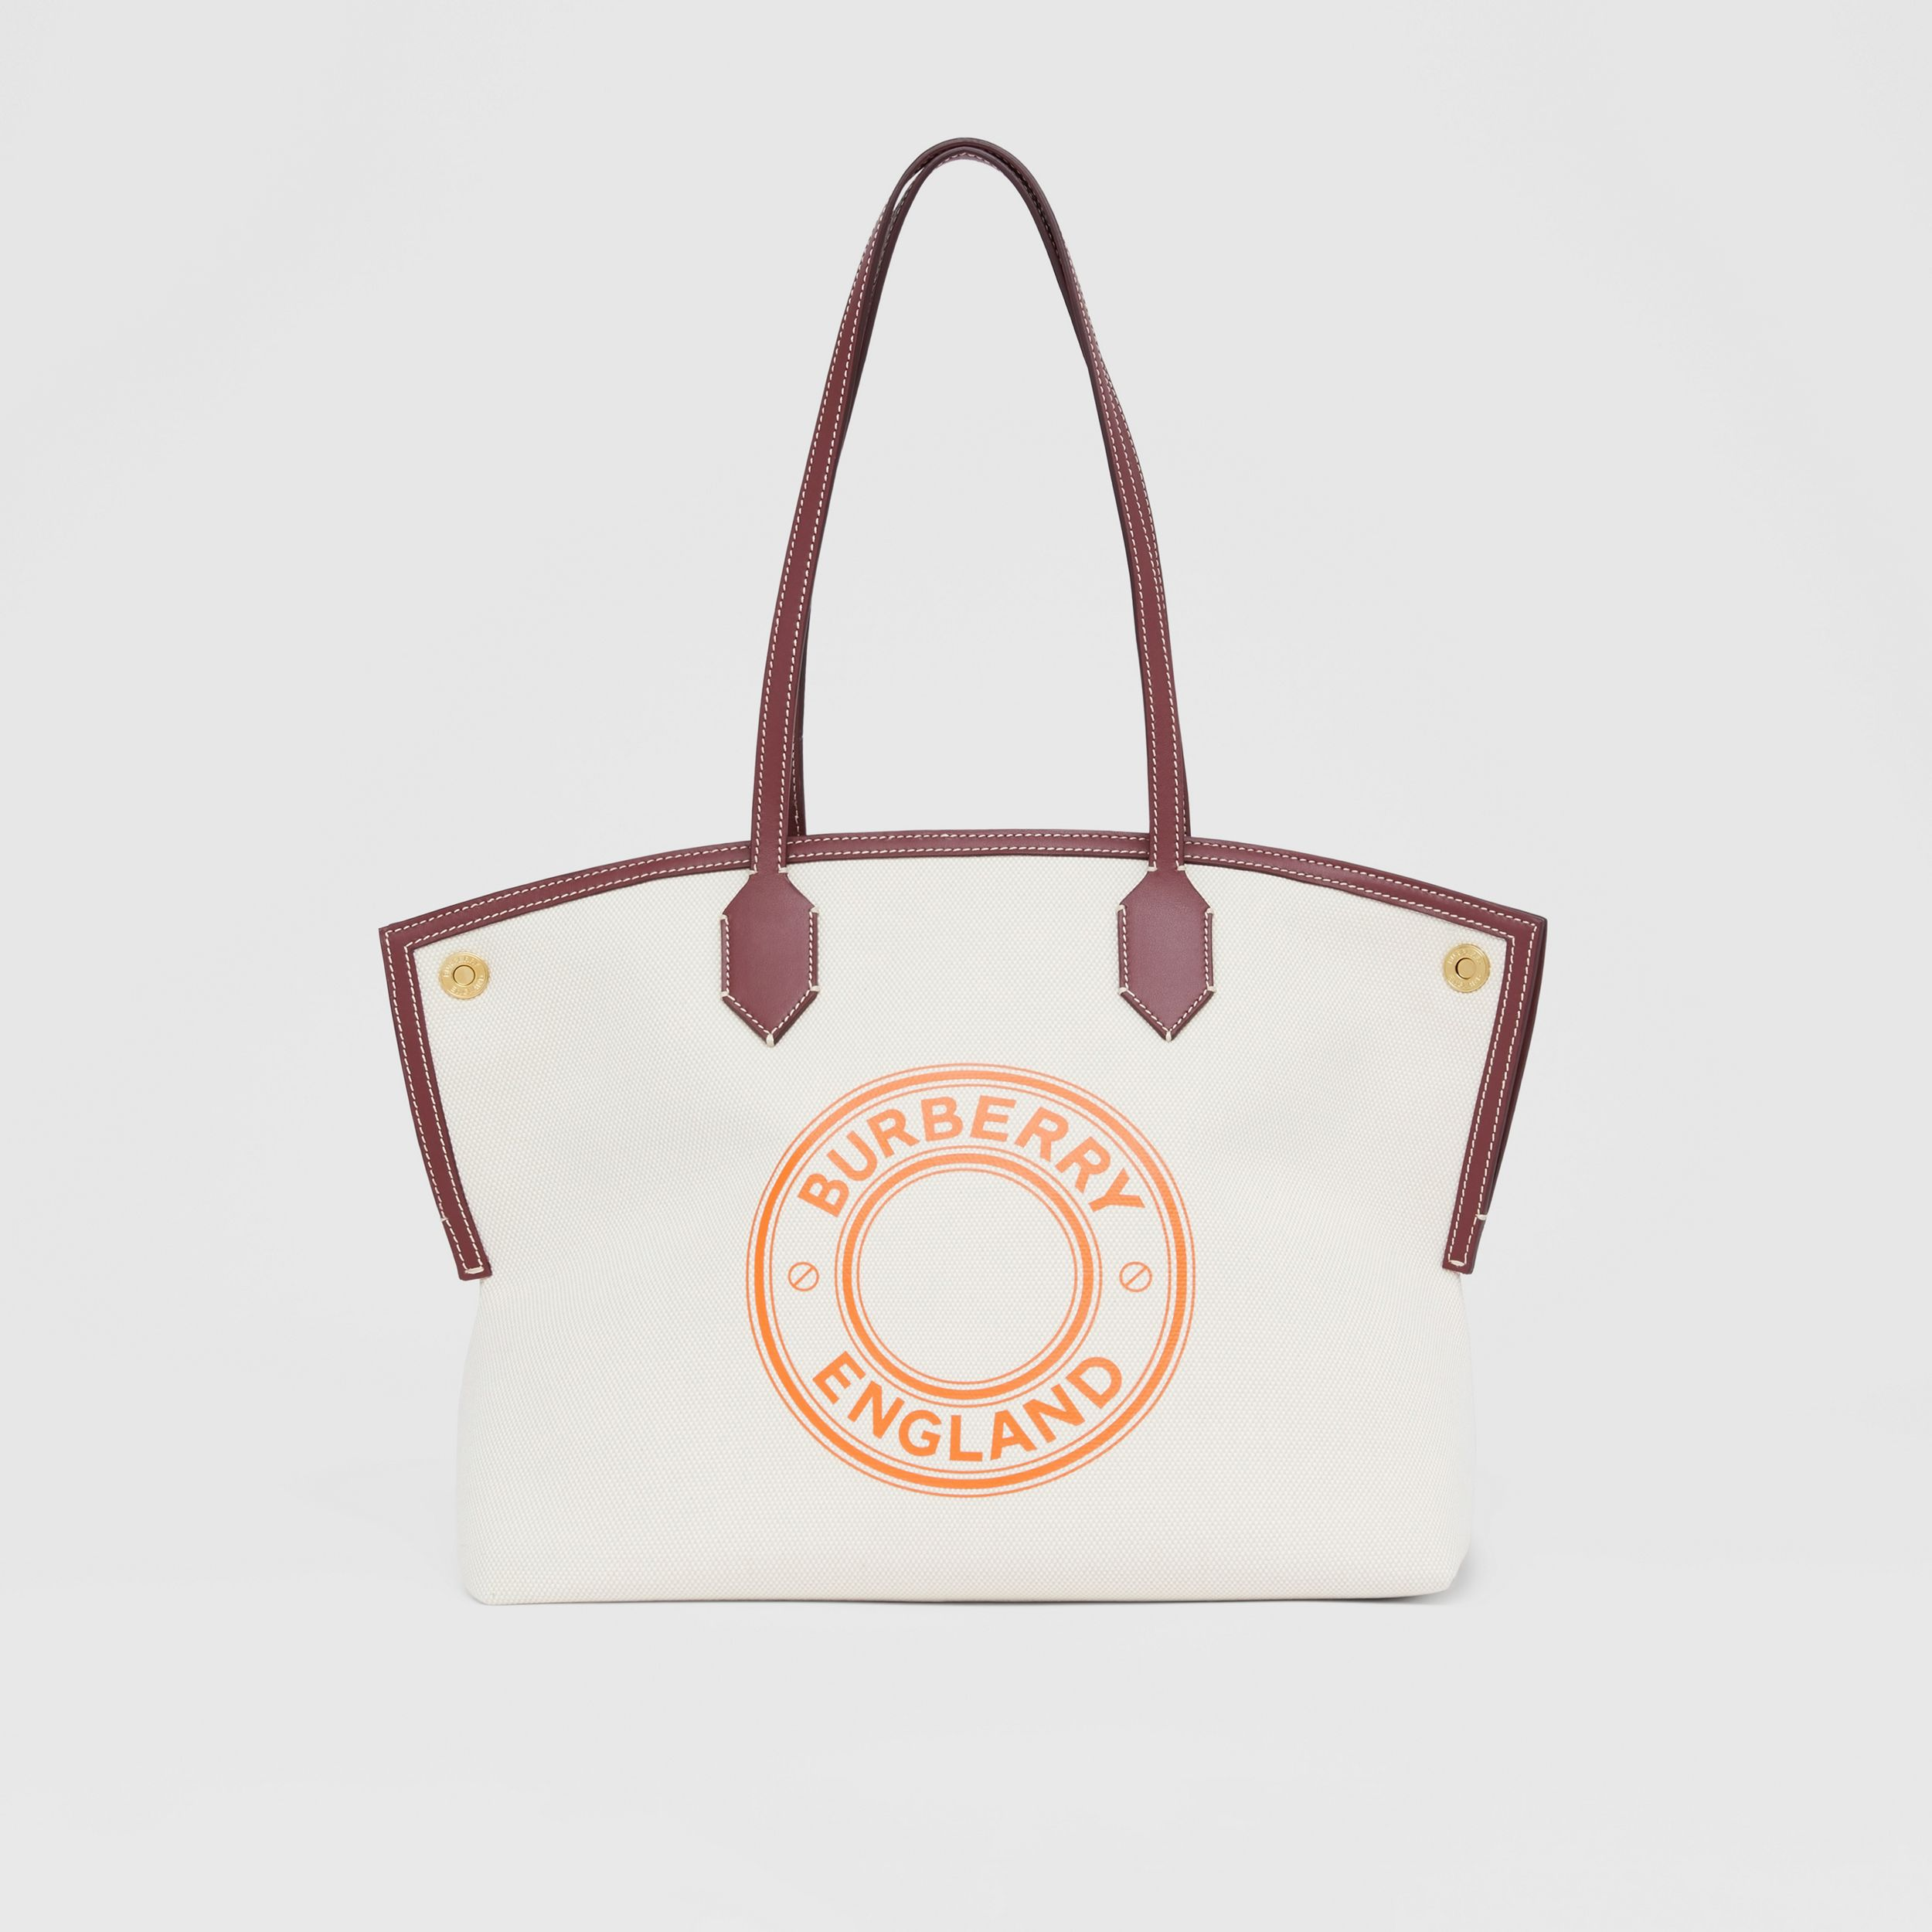 Medium Logo Graphic Cotton Canvas Society Tote in Natural/garnet/geranium - Women | Burberry Canada - 1